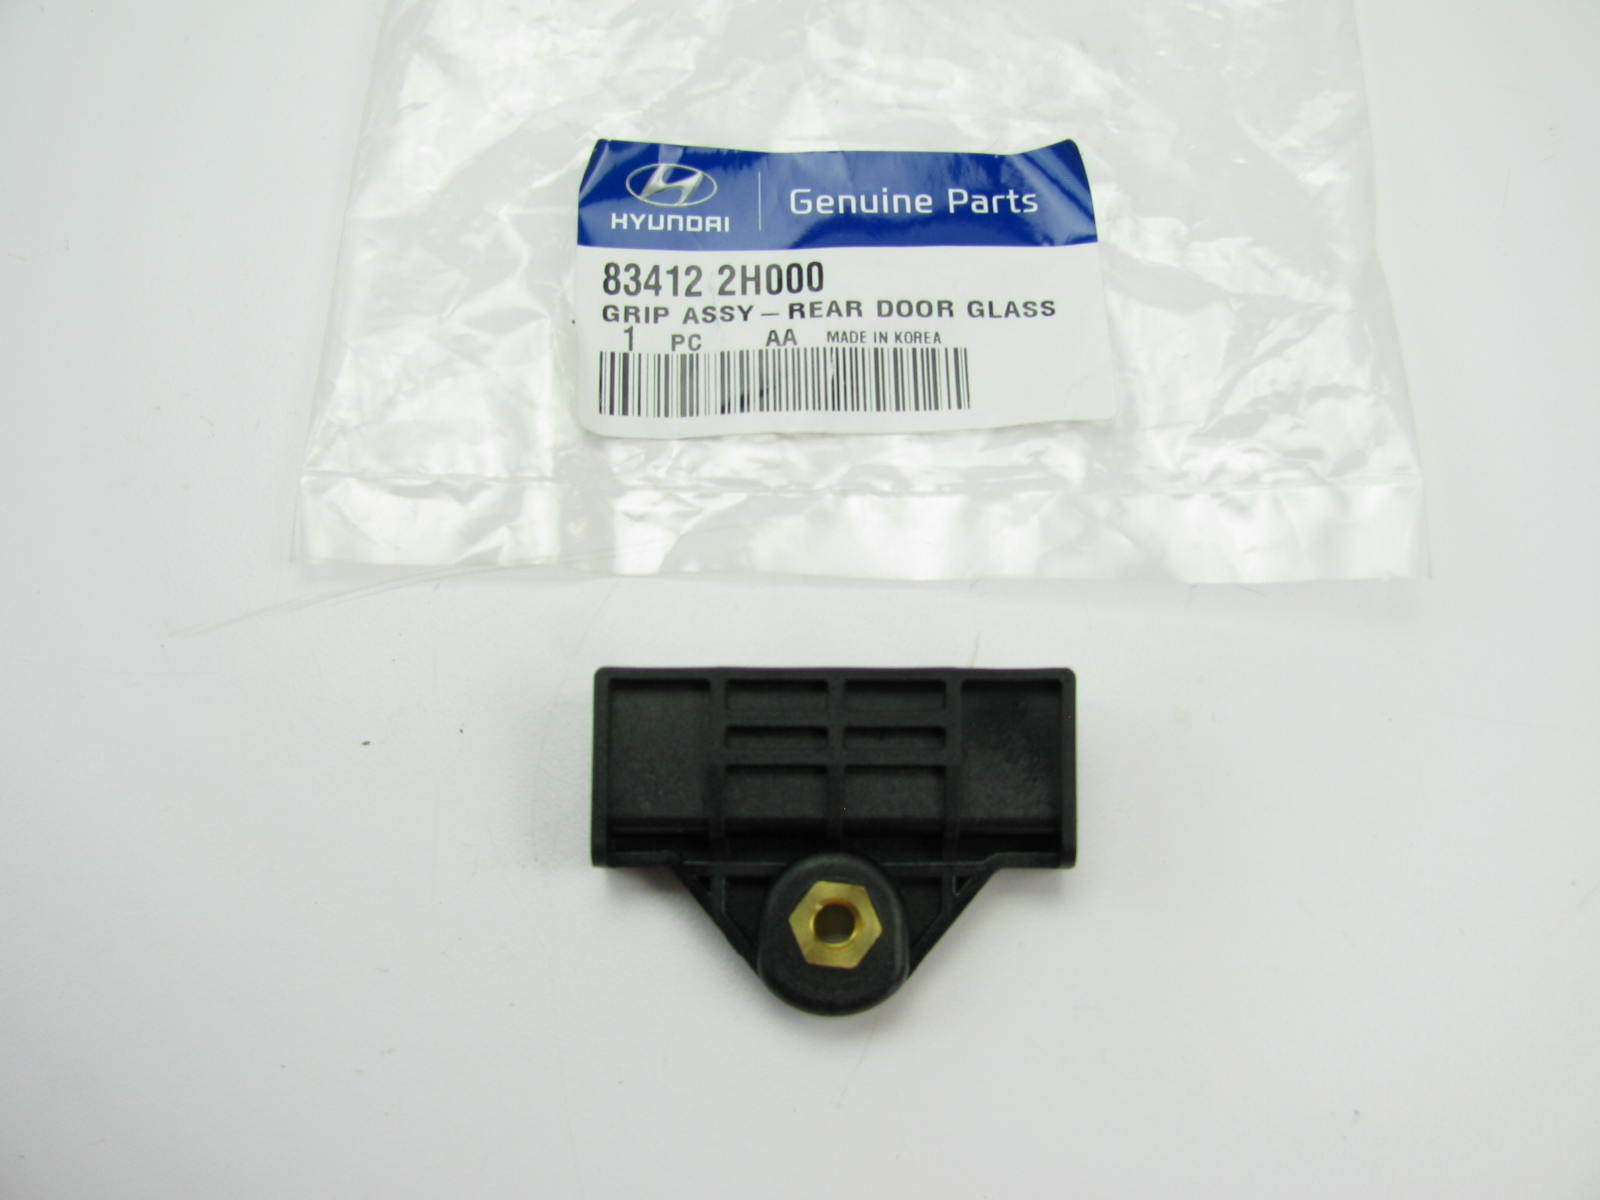 Picture 1 of 3 ... & Hyundai OEM 10-15 Tucson Glass-rear Door-door Glass Holder ... pezcame.com